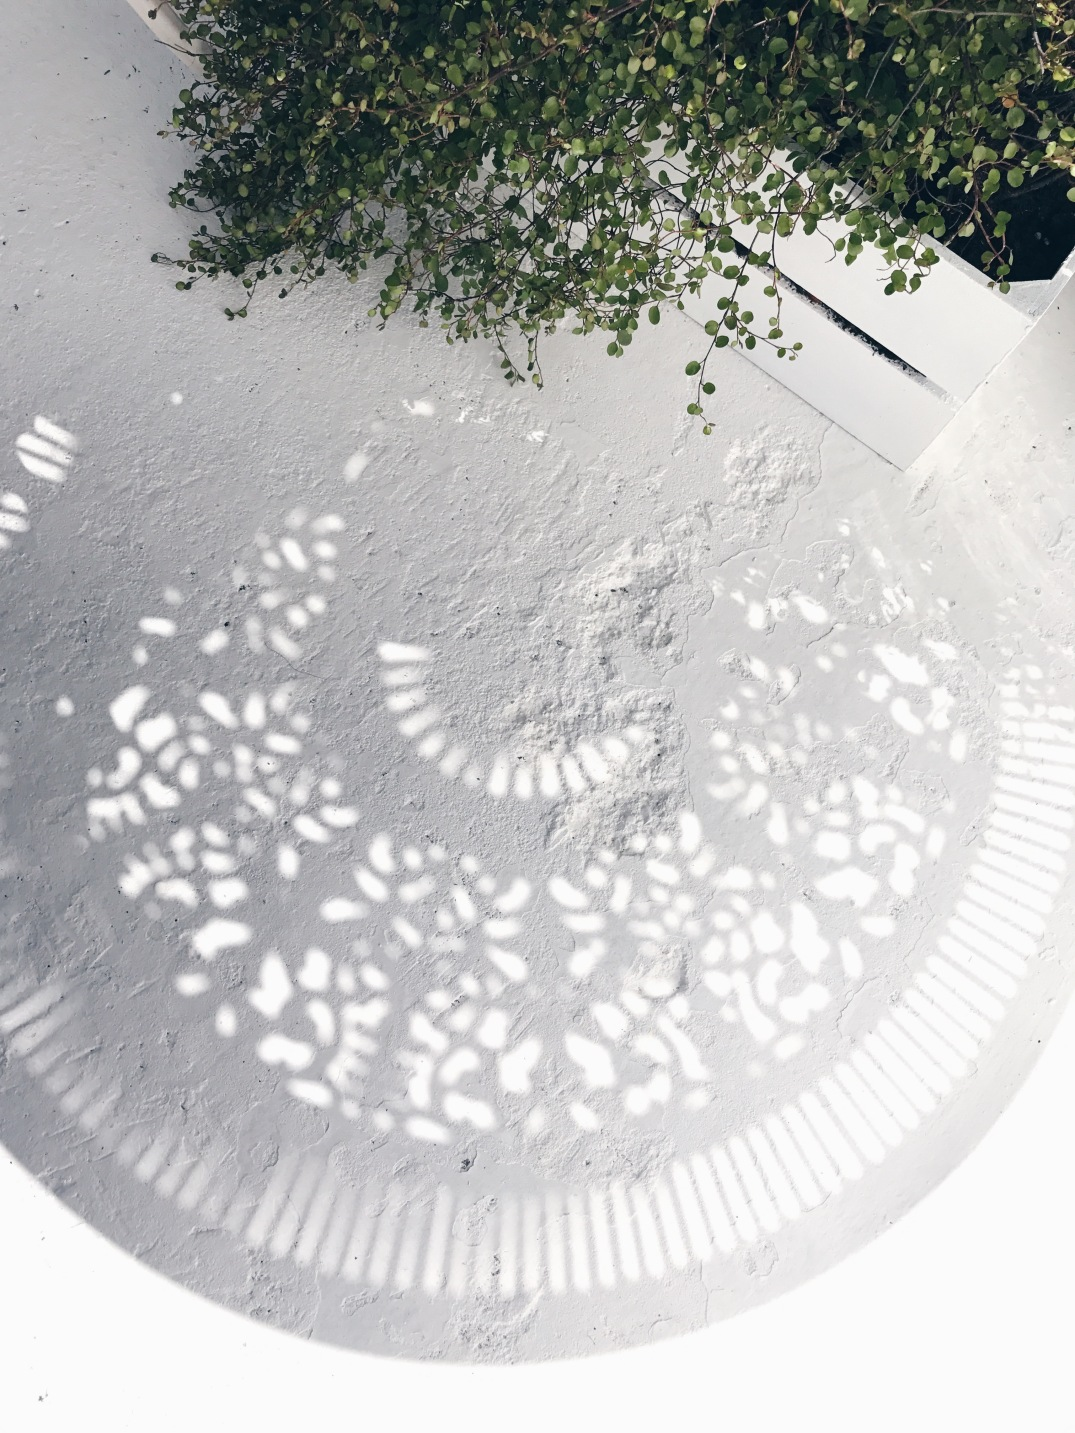 shadow play from my new vintage outdoor furniture on a floor also painted with 'All White' from Farrow and Ball